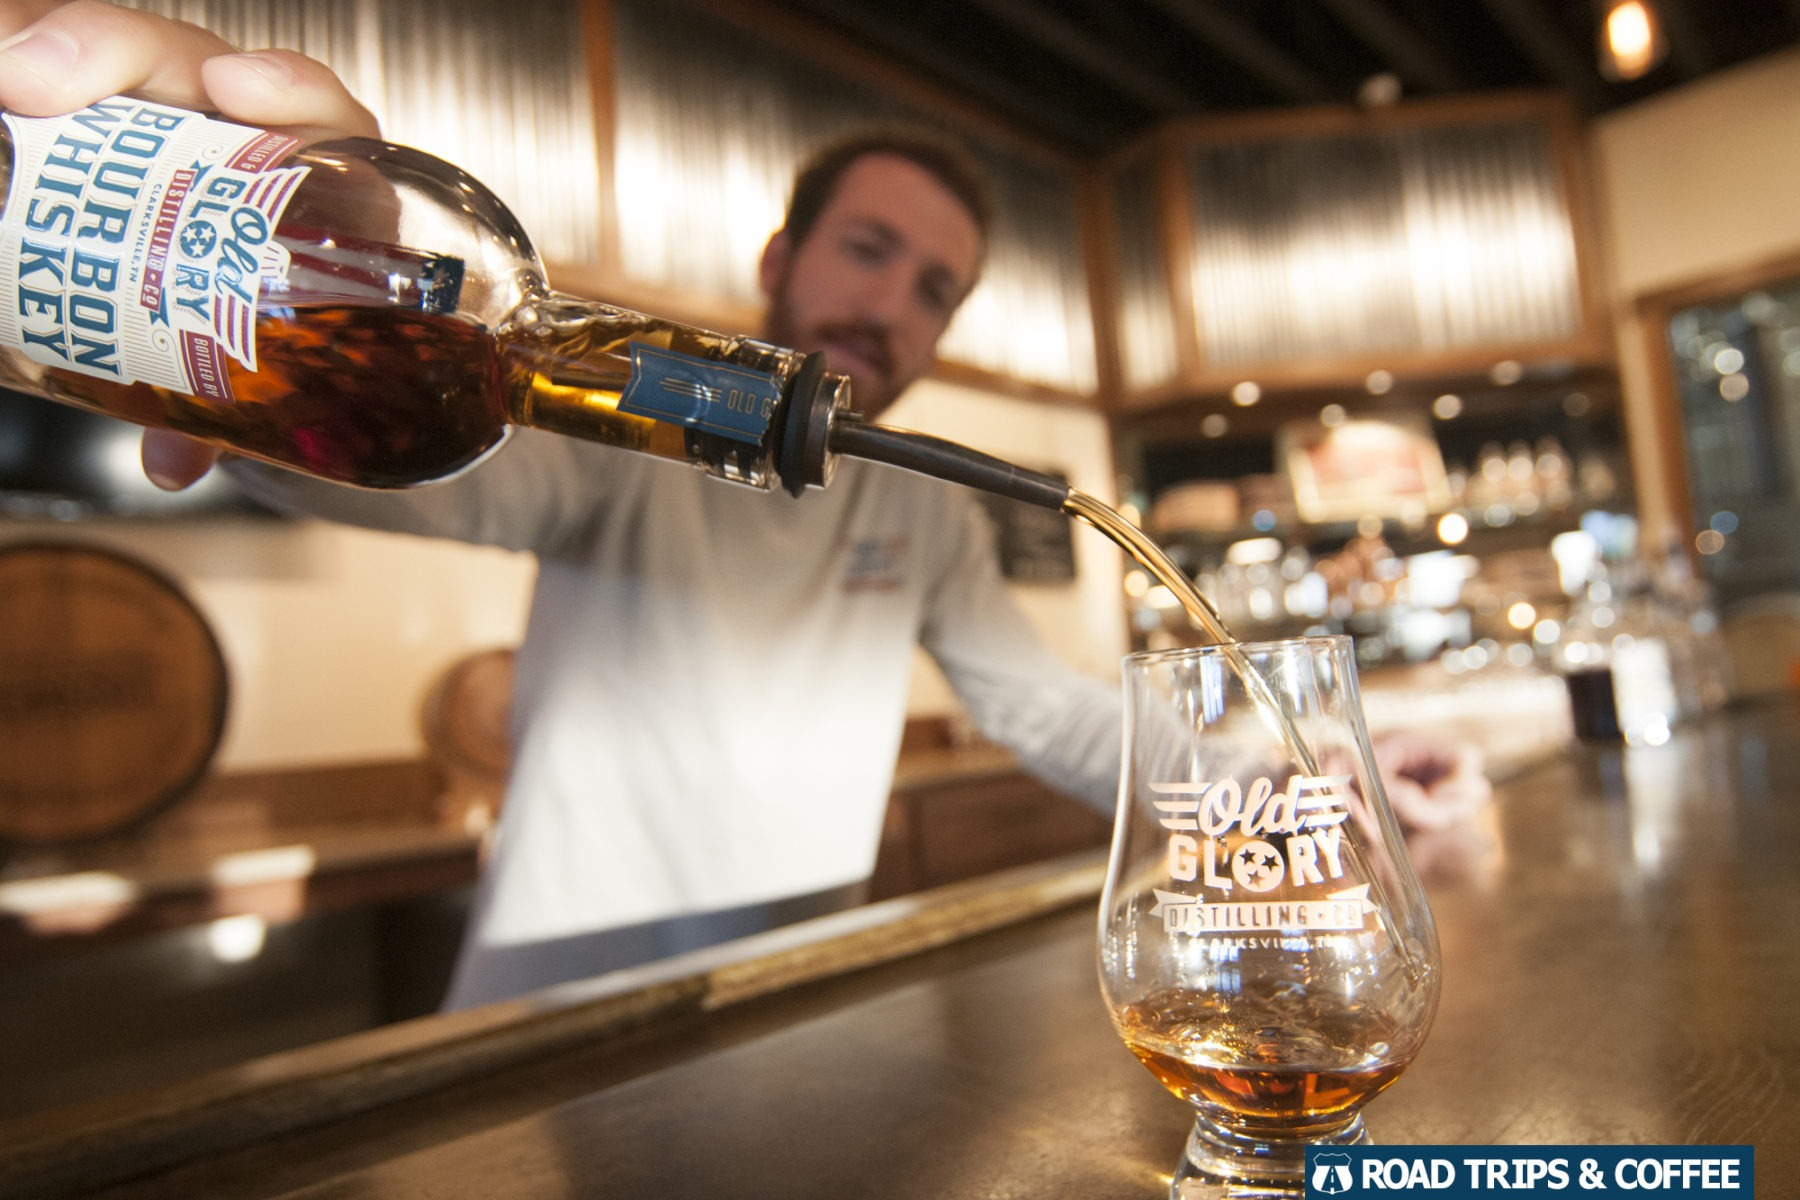 The owner of the Old Glory Distilling Company pours a sample of his vodka in Clarksville, Tennessee